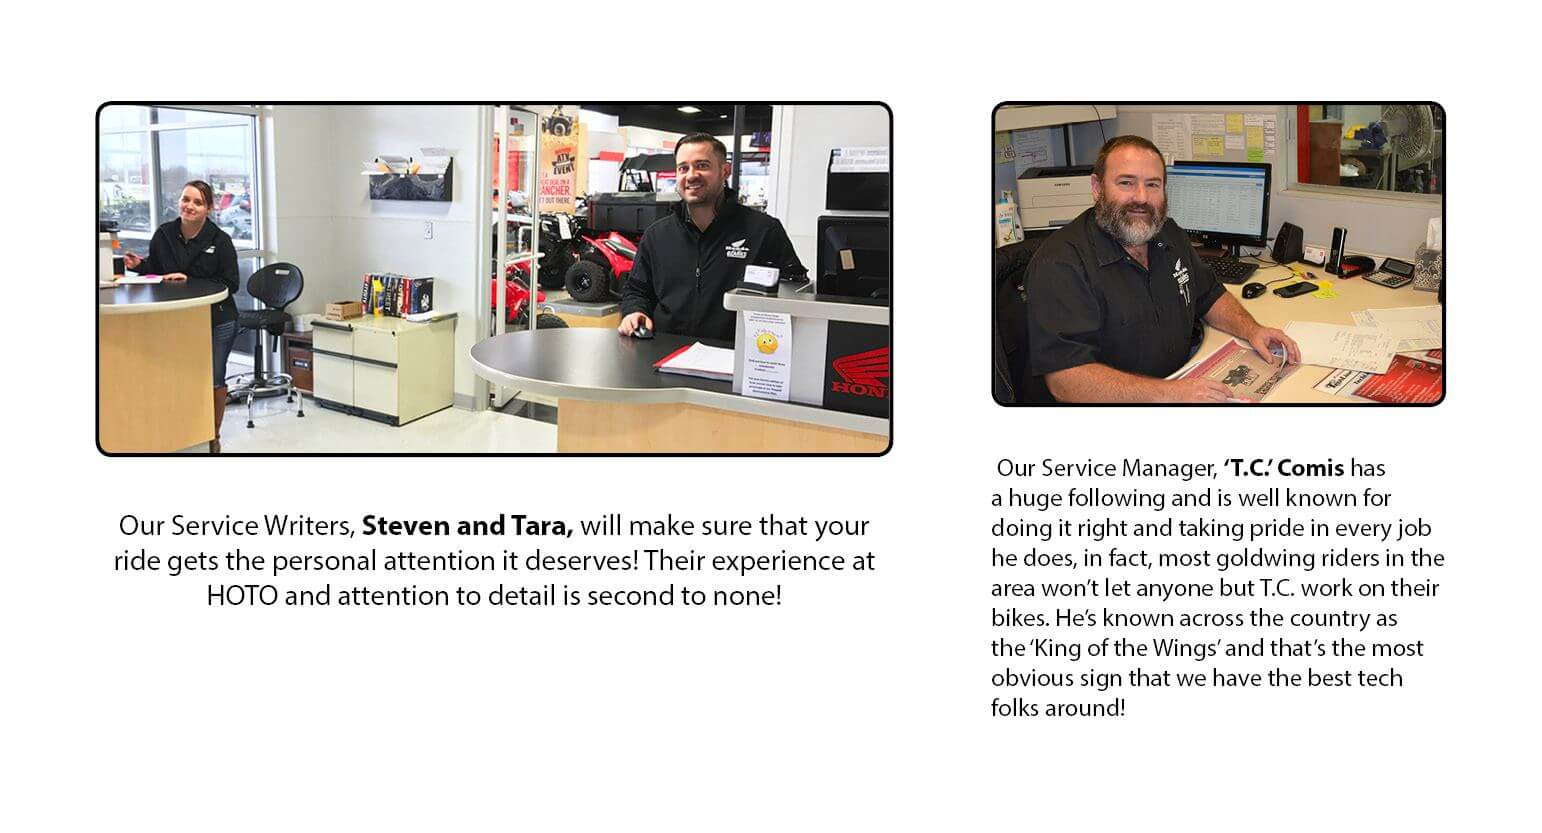 Honda of the Ozarks Service Writers and Service Manager